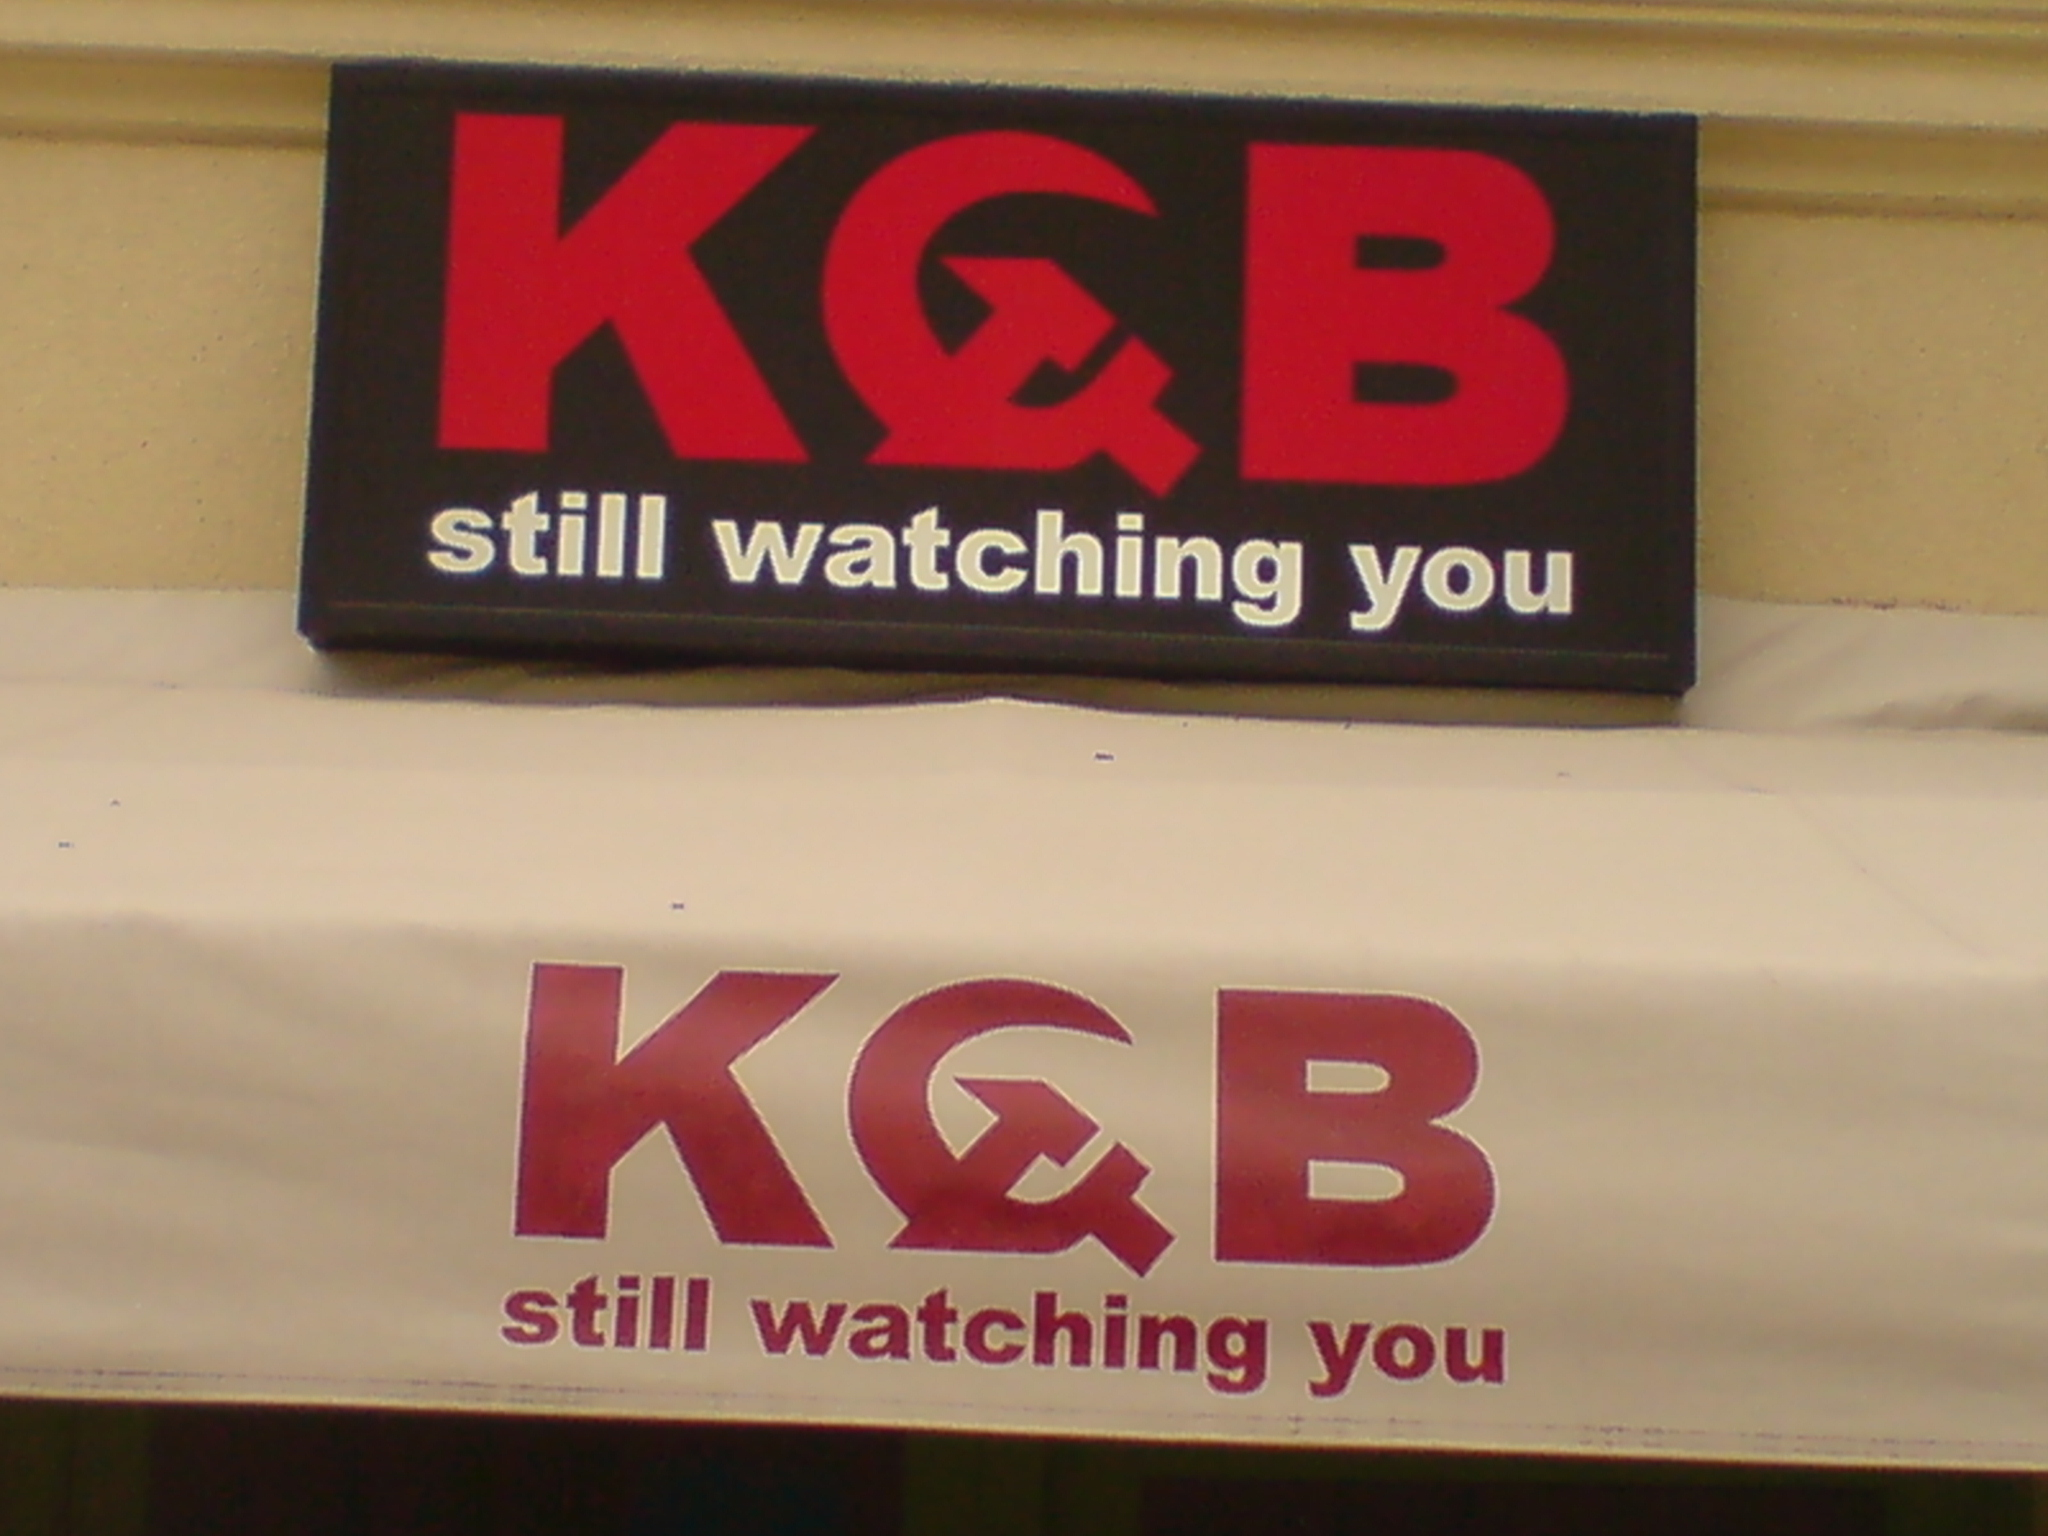 kgb_still_watching_you